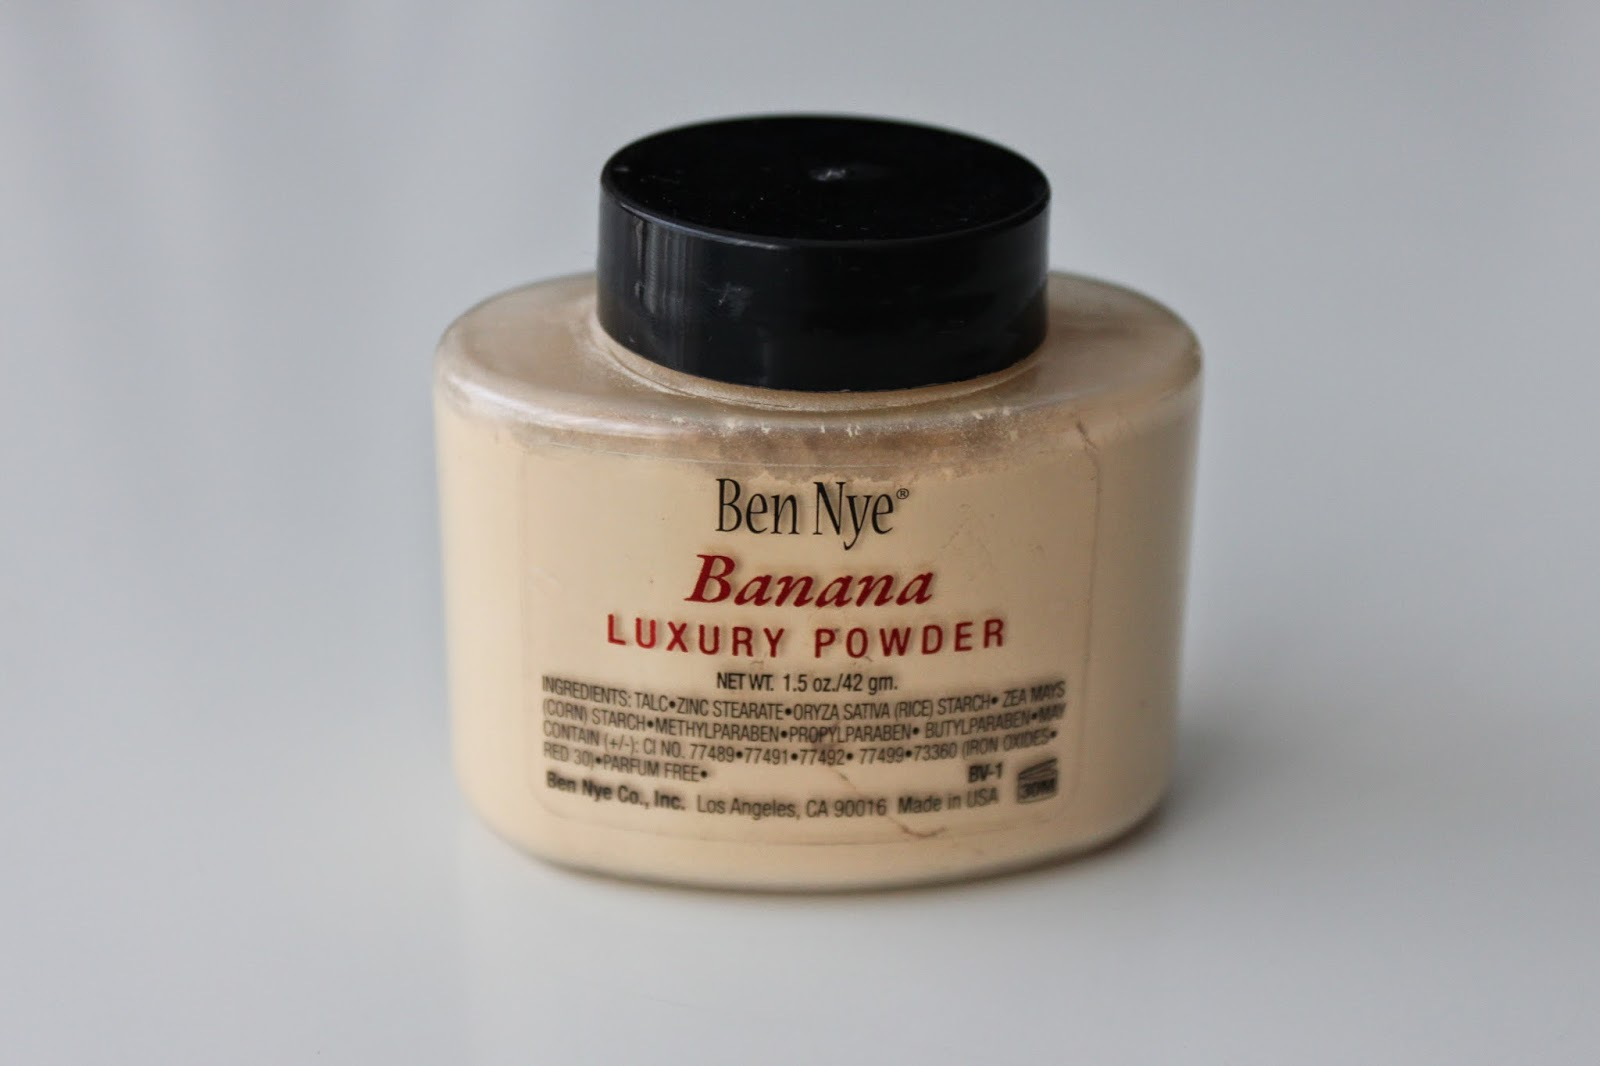 Review Ben Nye Banana Luxury Powder